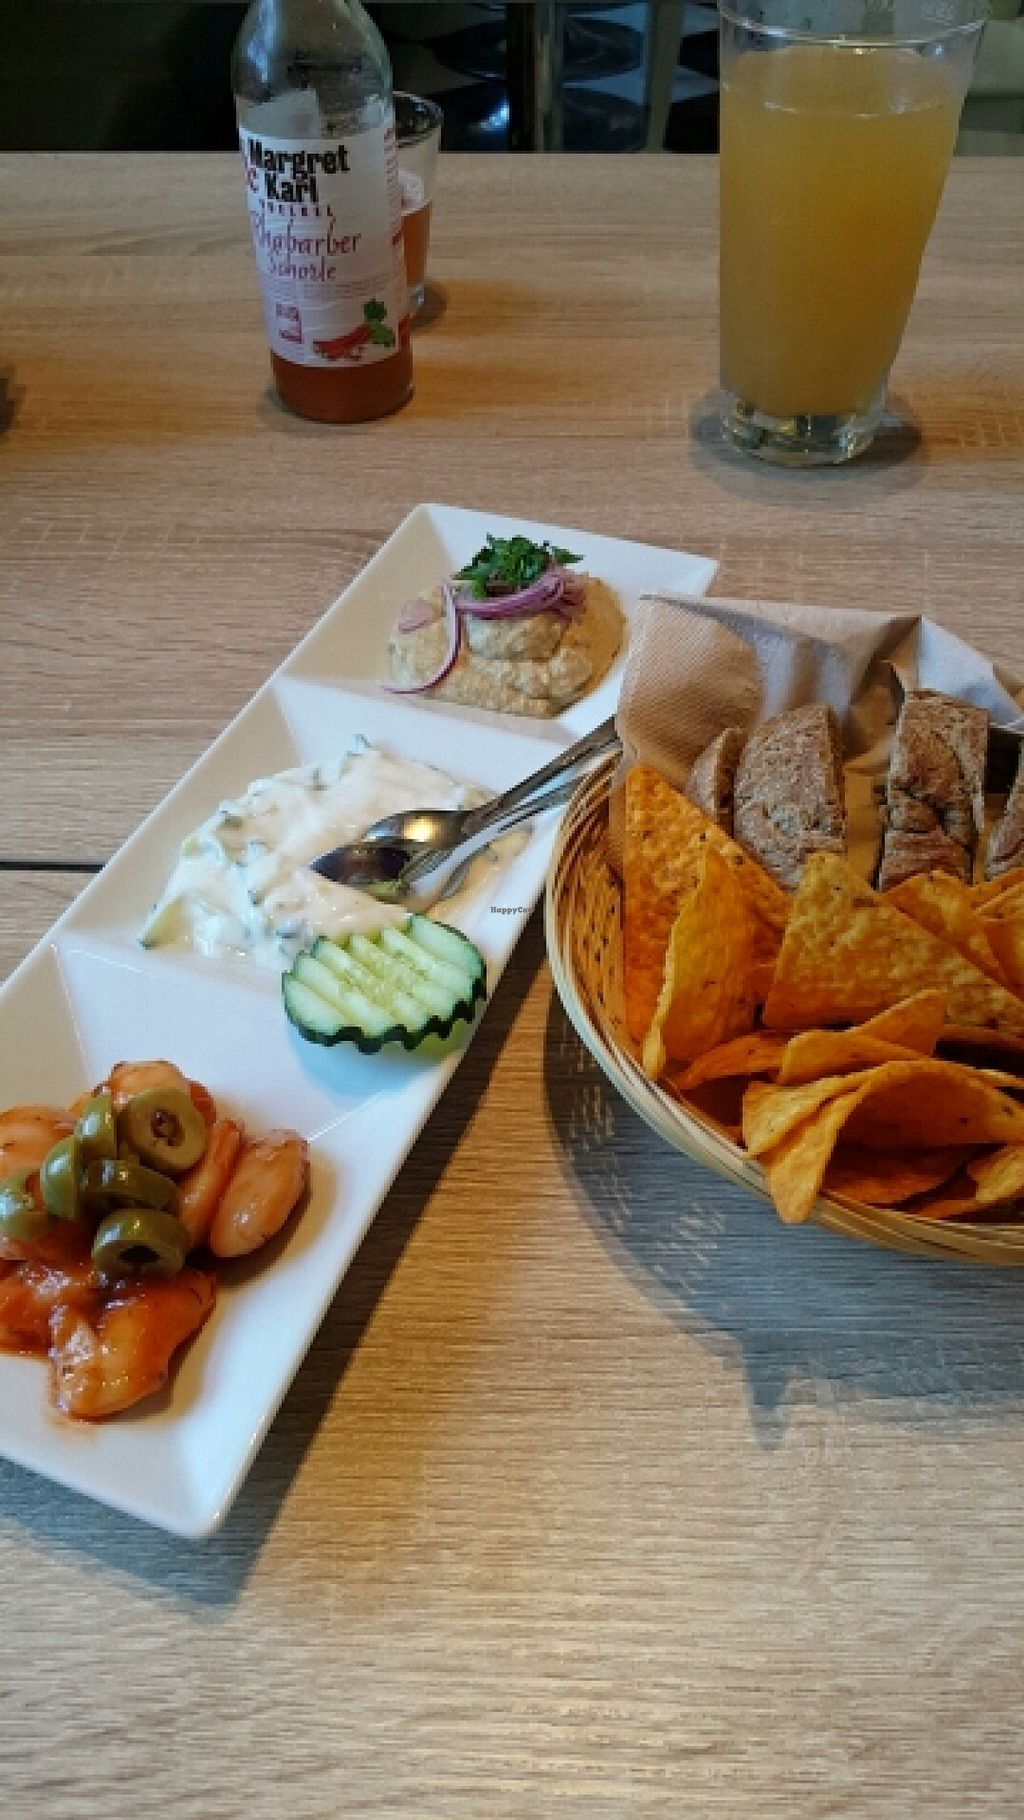 """Photo of CLOSED: My Heart Beats Vegan  by <a href=""""/members/profile/davehk"""">davehk</a> <br/>Hummus starter <br/> June 25, 2016  - <a href='/contact/abuse/image/73364/155986'>Report</a>"""